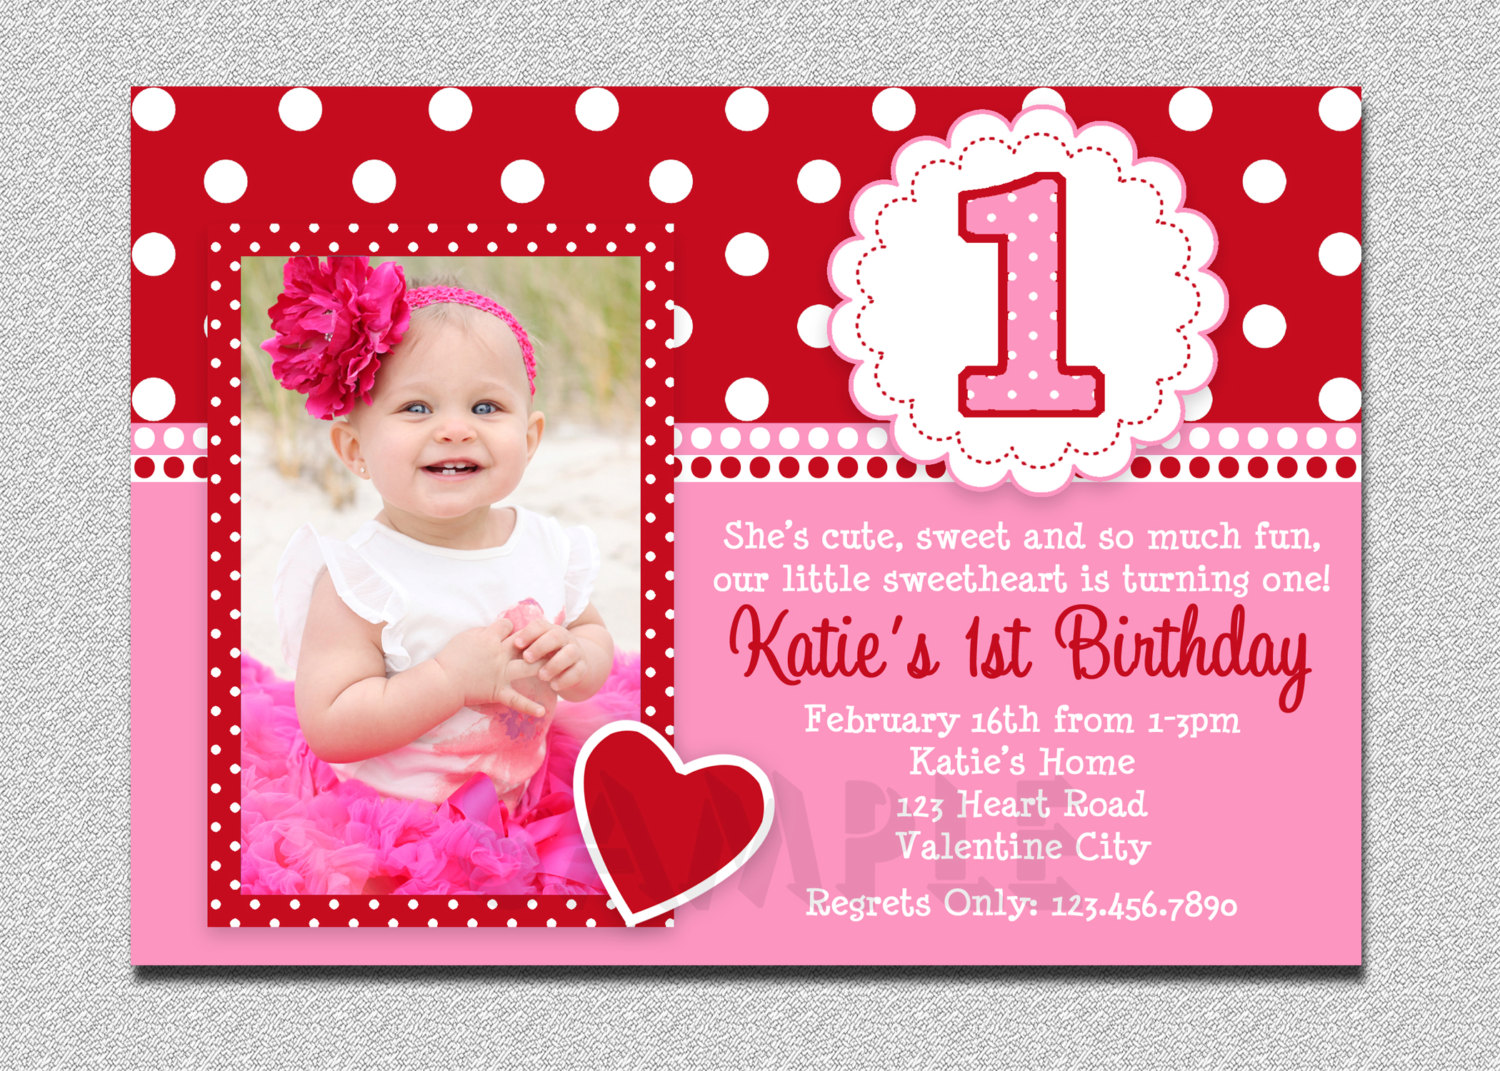 1st birthday party invitation card template free ; first-birthday-party-invitations-valentines-invitation-1st-birthday-valentine-party-invite-printable-cards-baby-girls